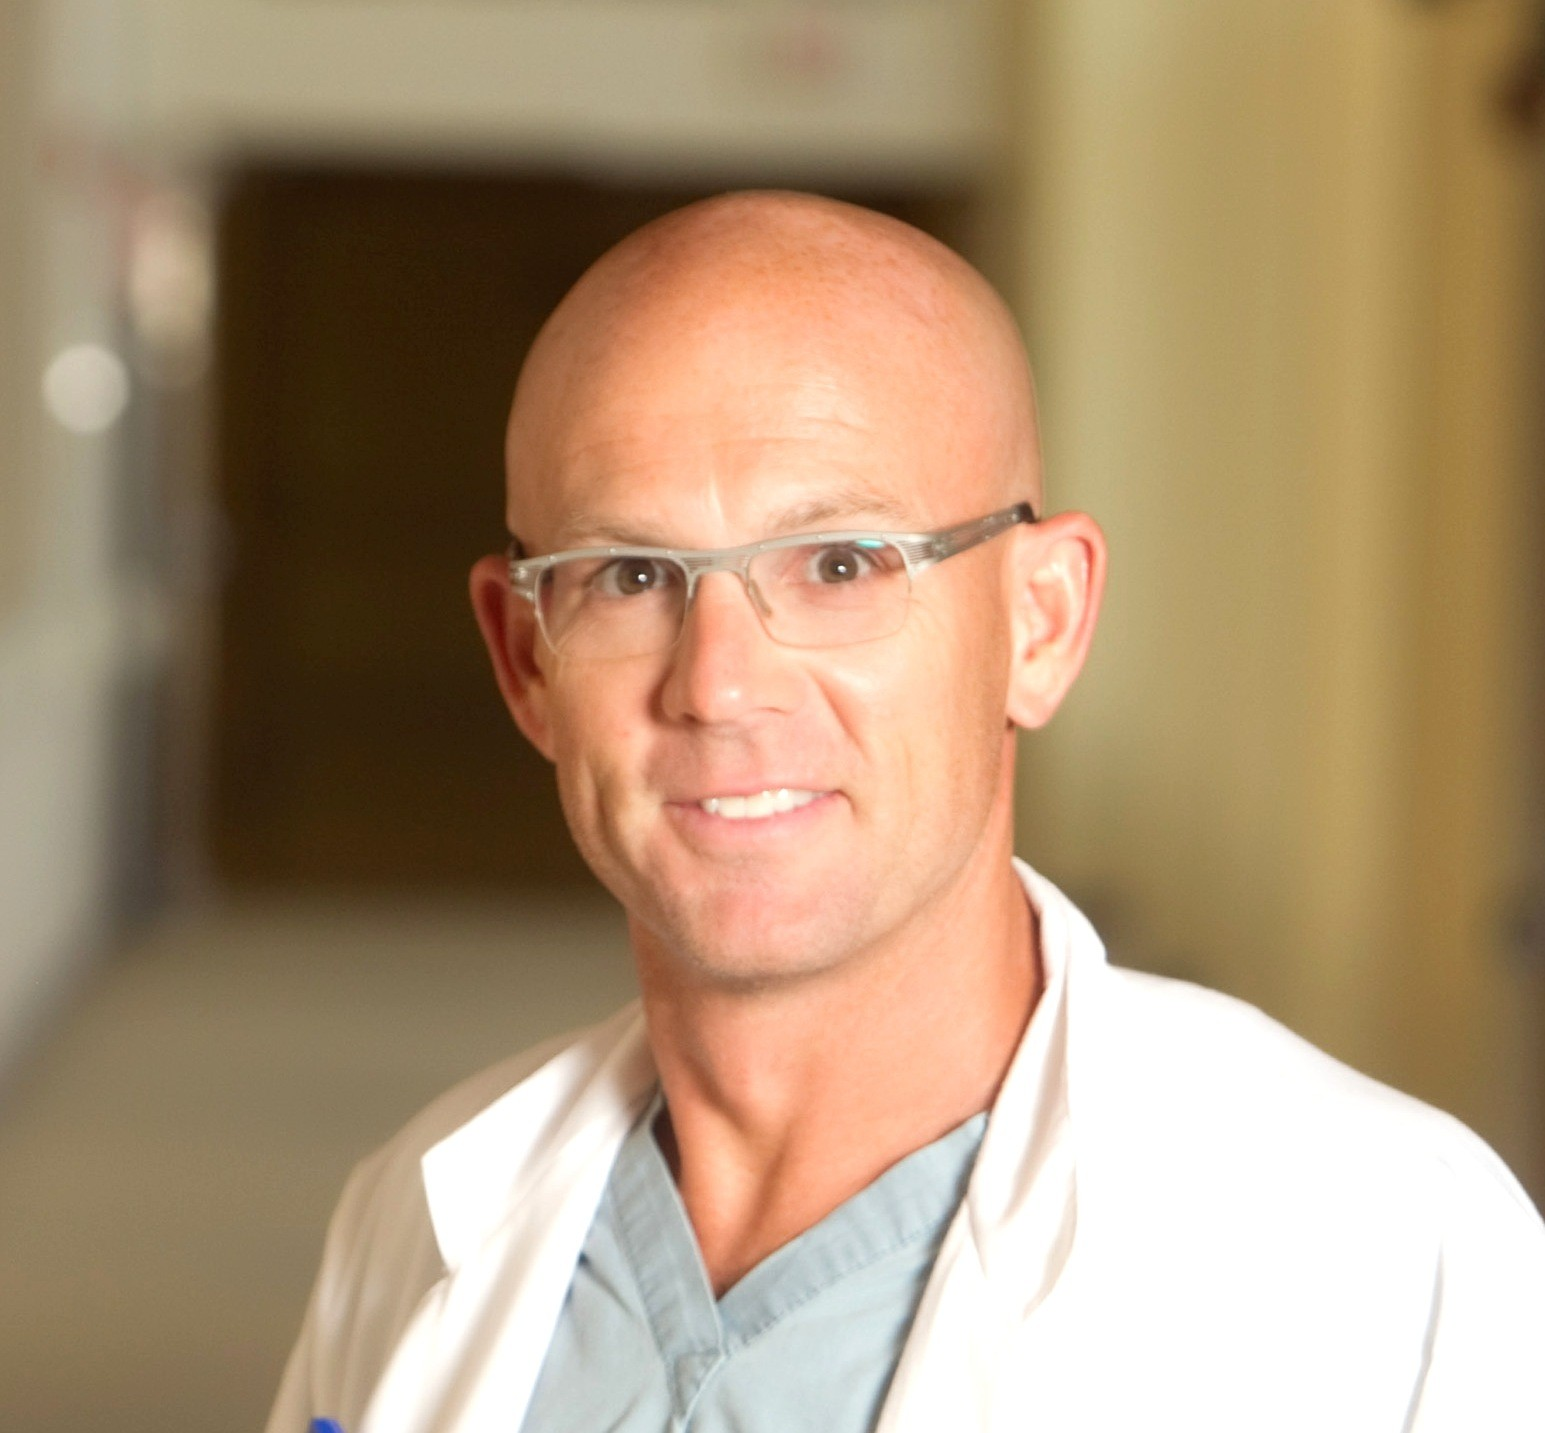 Greg King, Mercy APRN